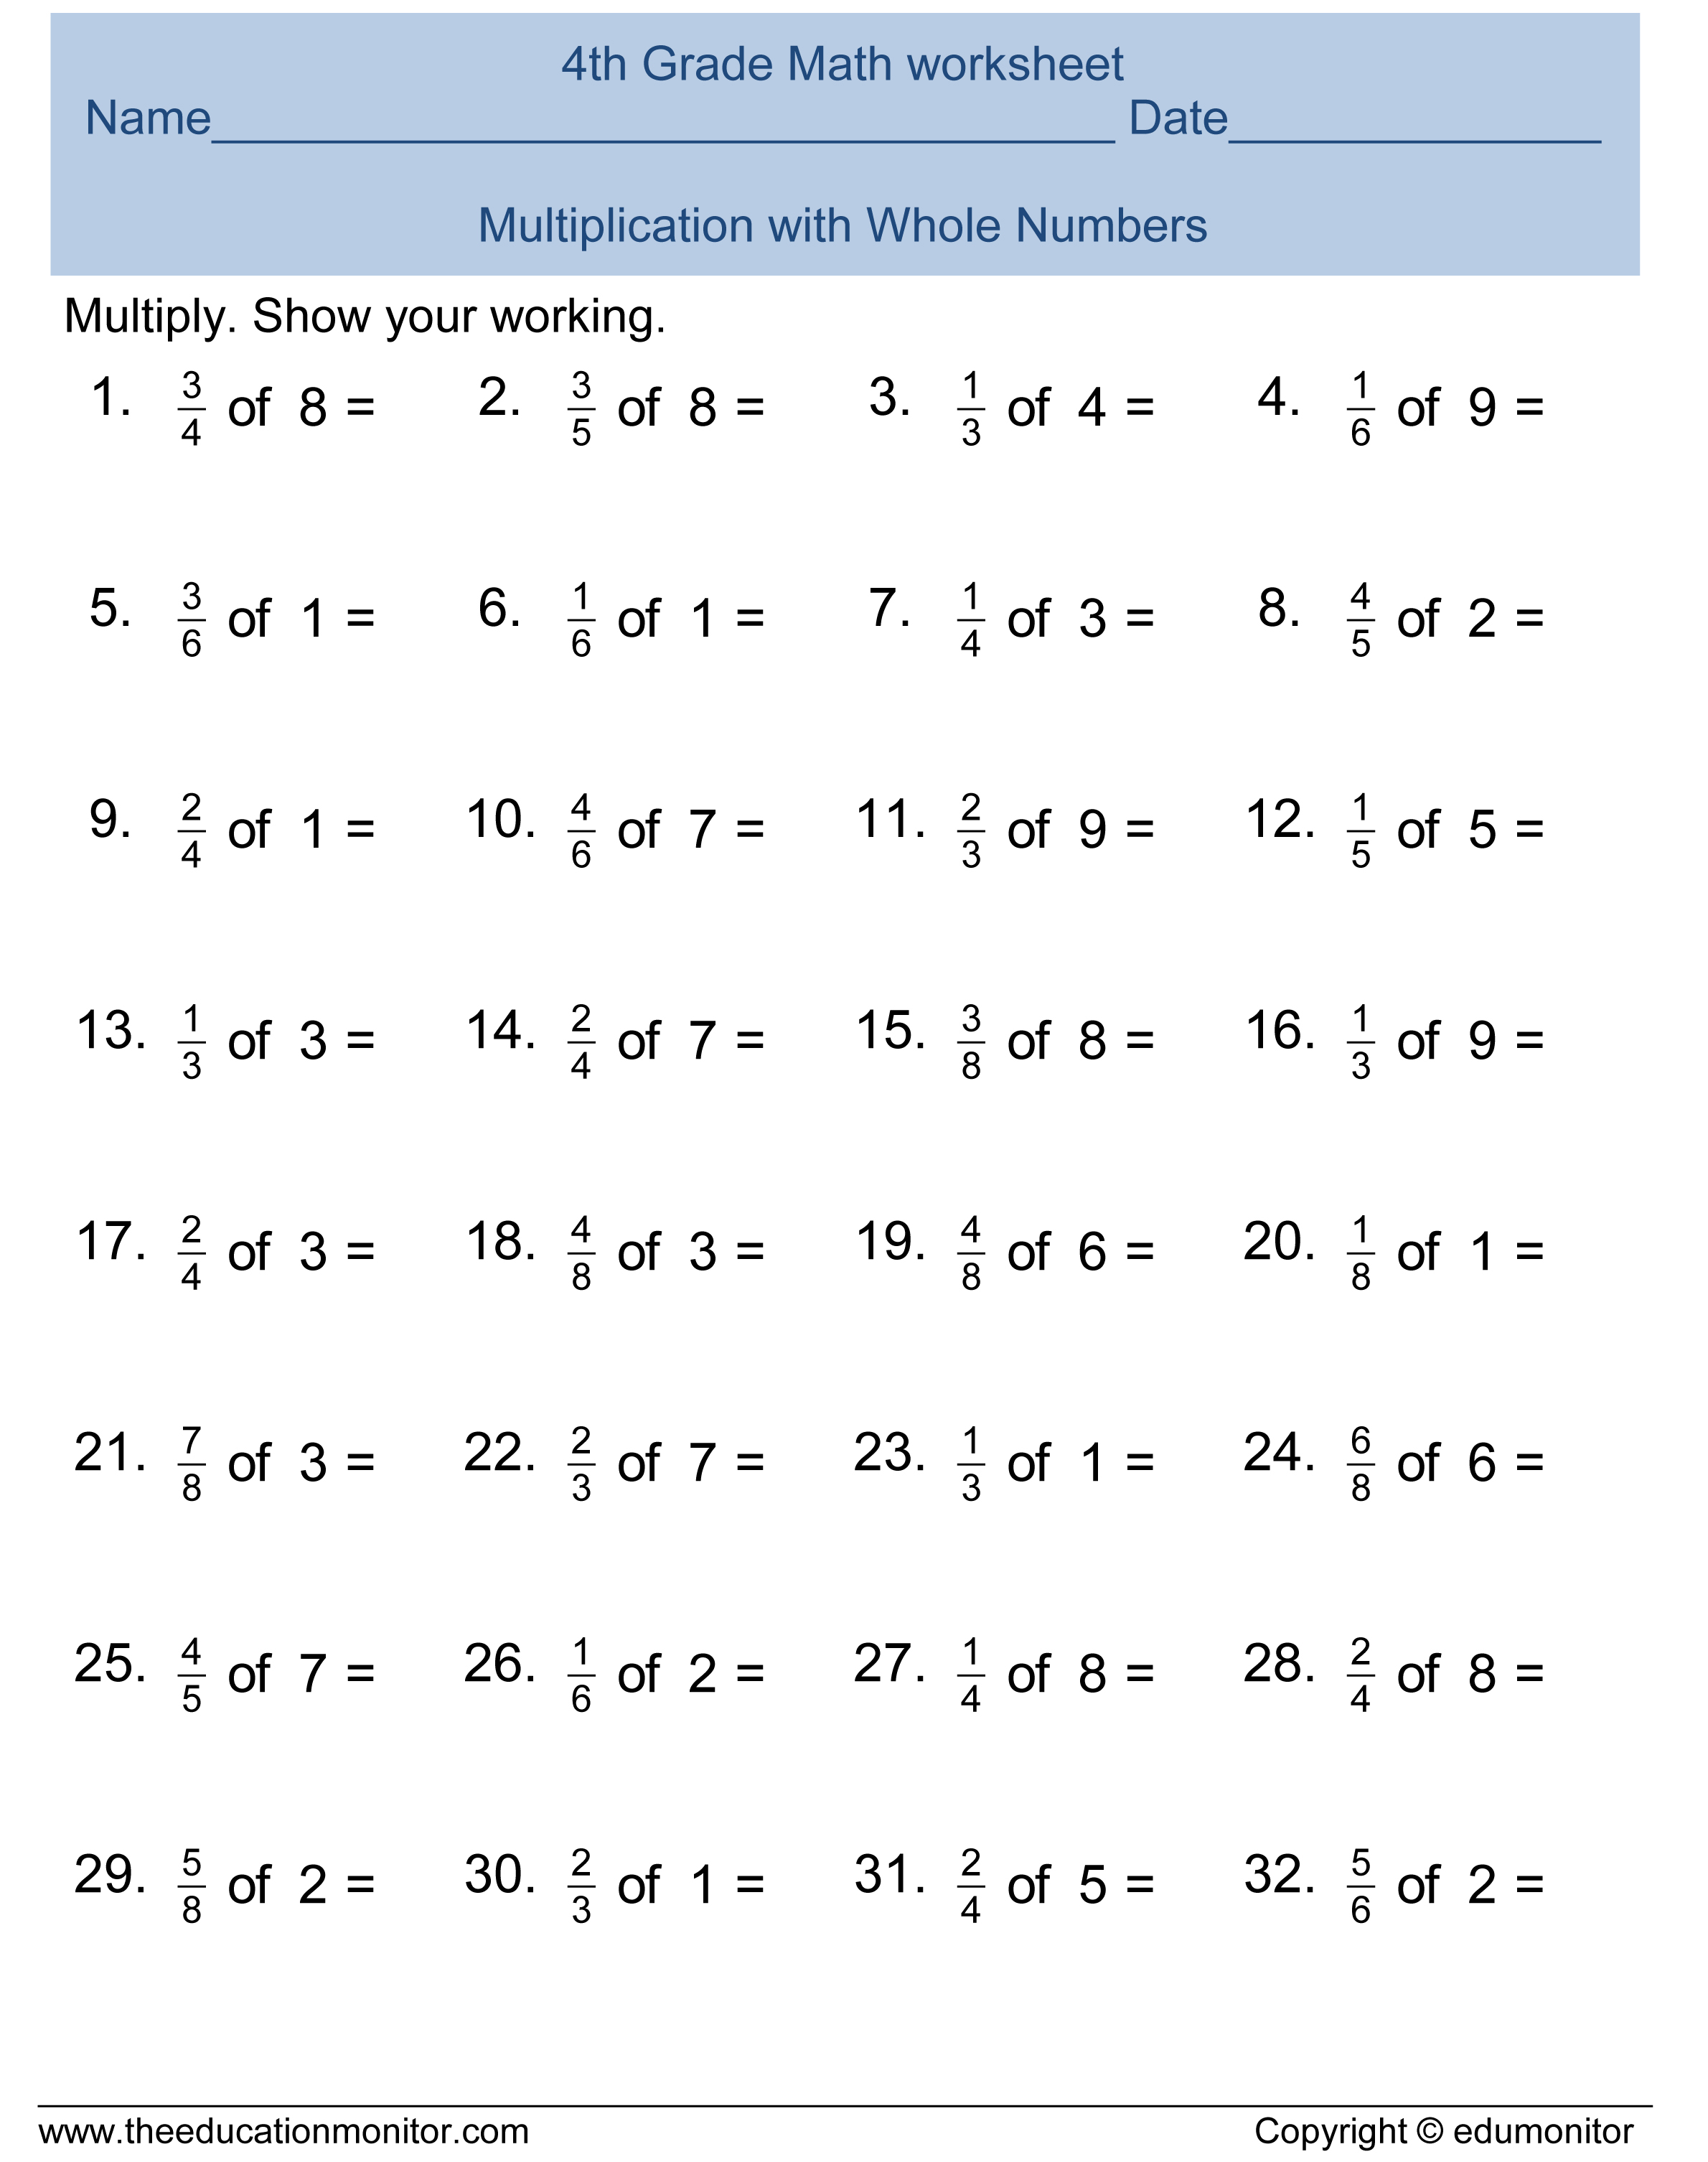 math worksheet : super teachers fourth grade worksheets archives  edumonitor : Super Teachers Worksheets Math